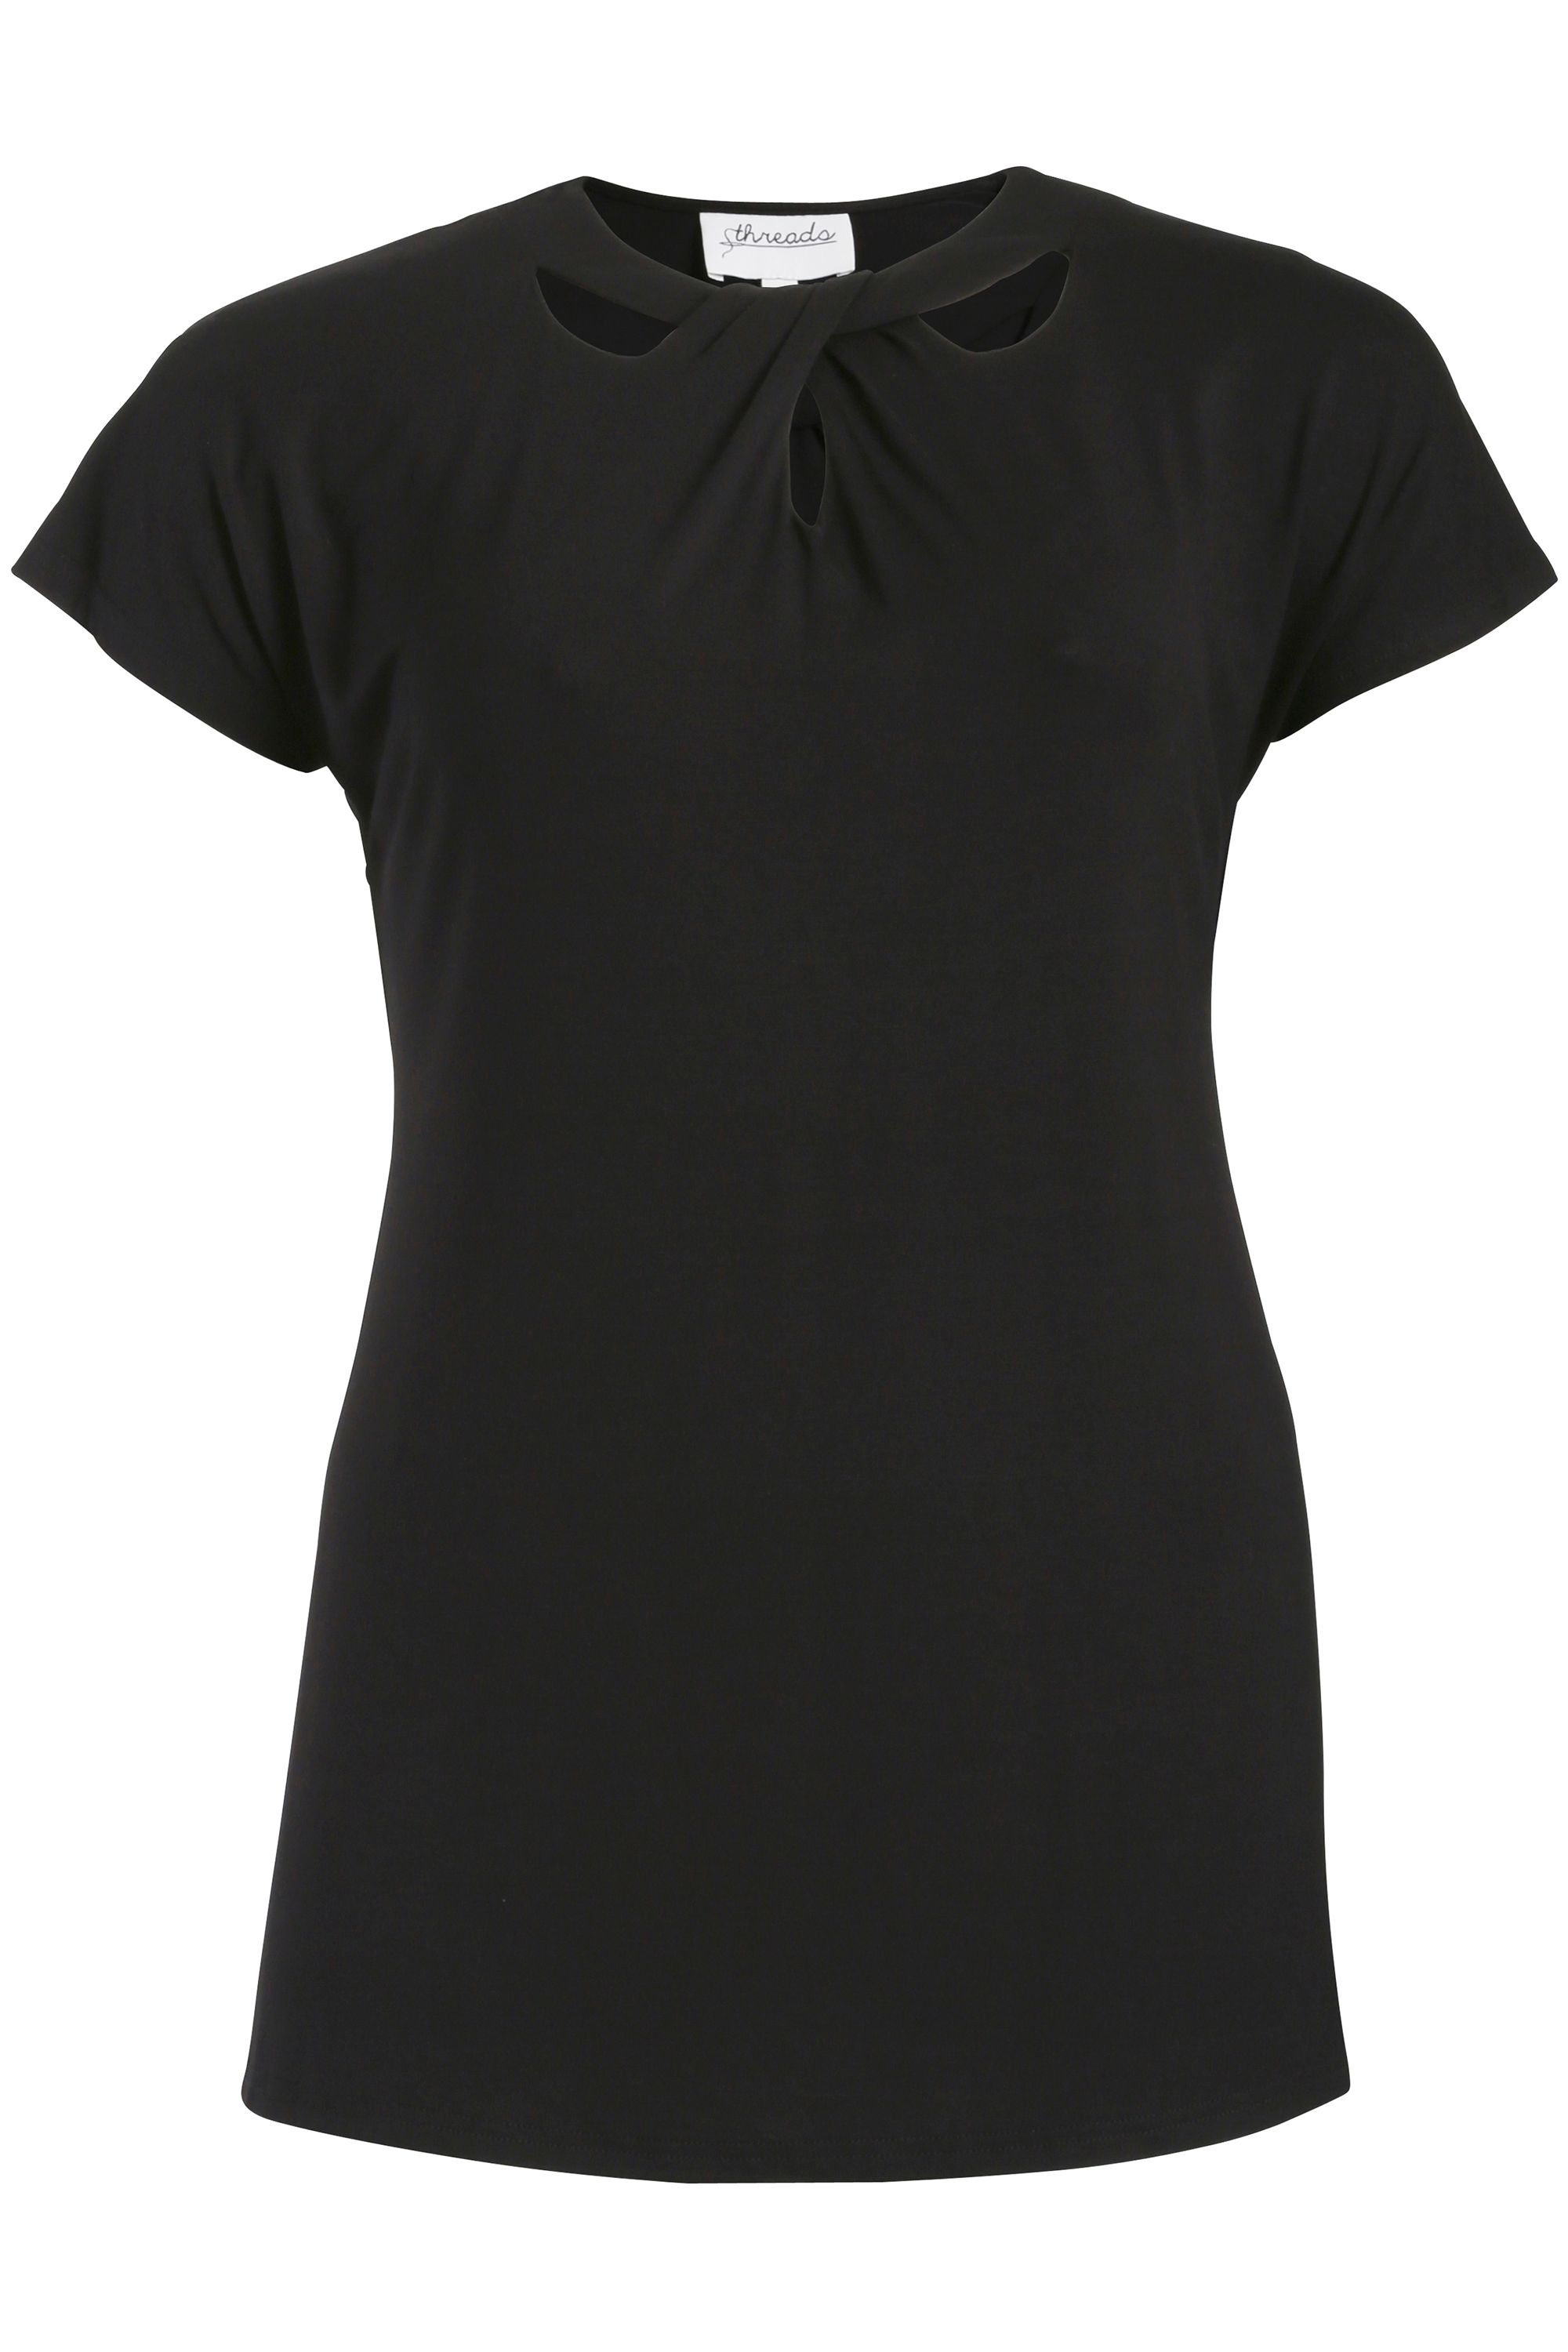 Threads Threads Plus Size Cut Out Tee, Black